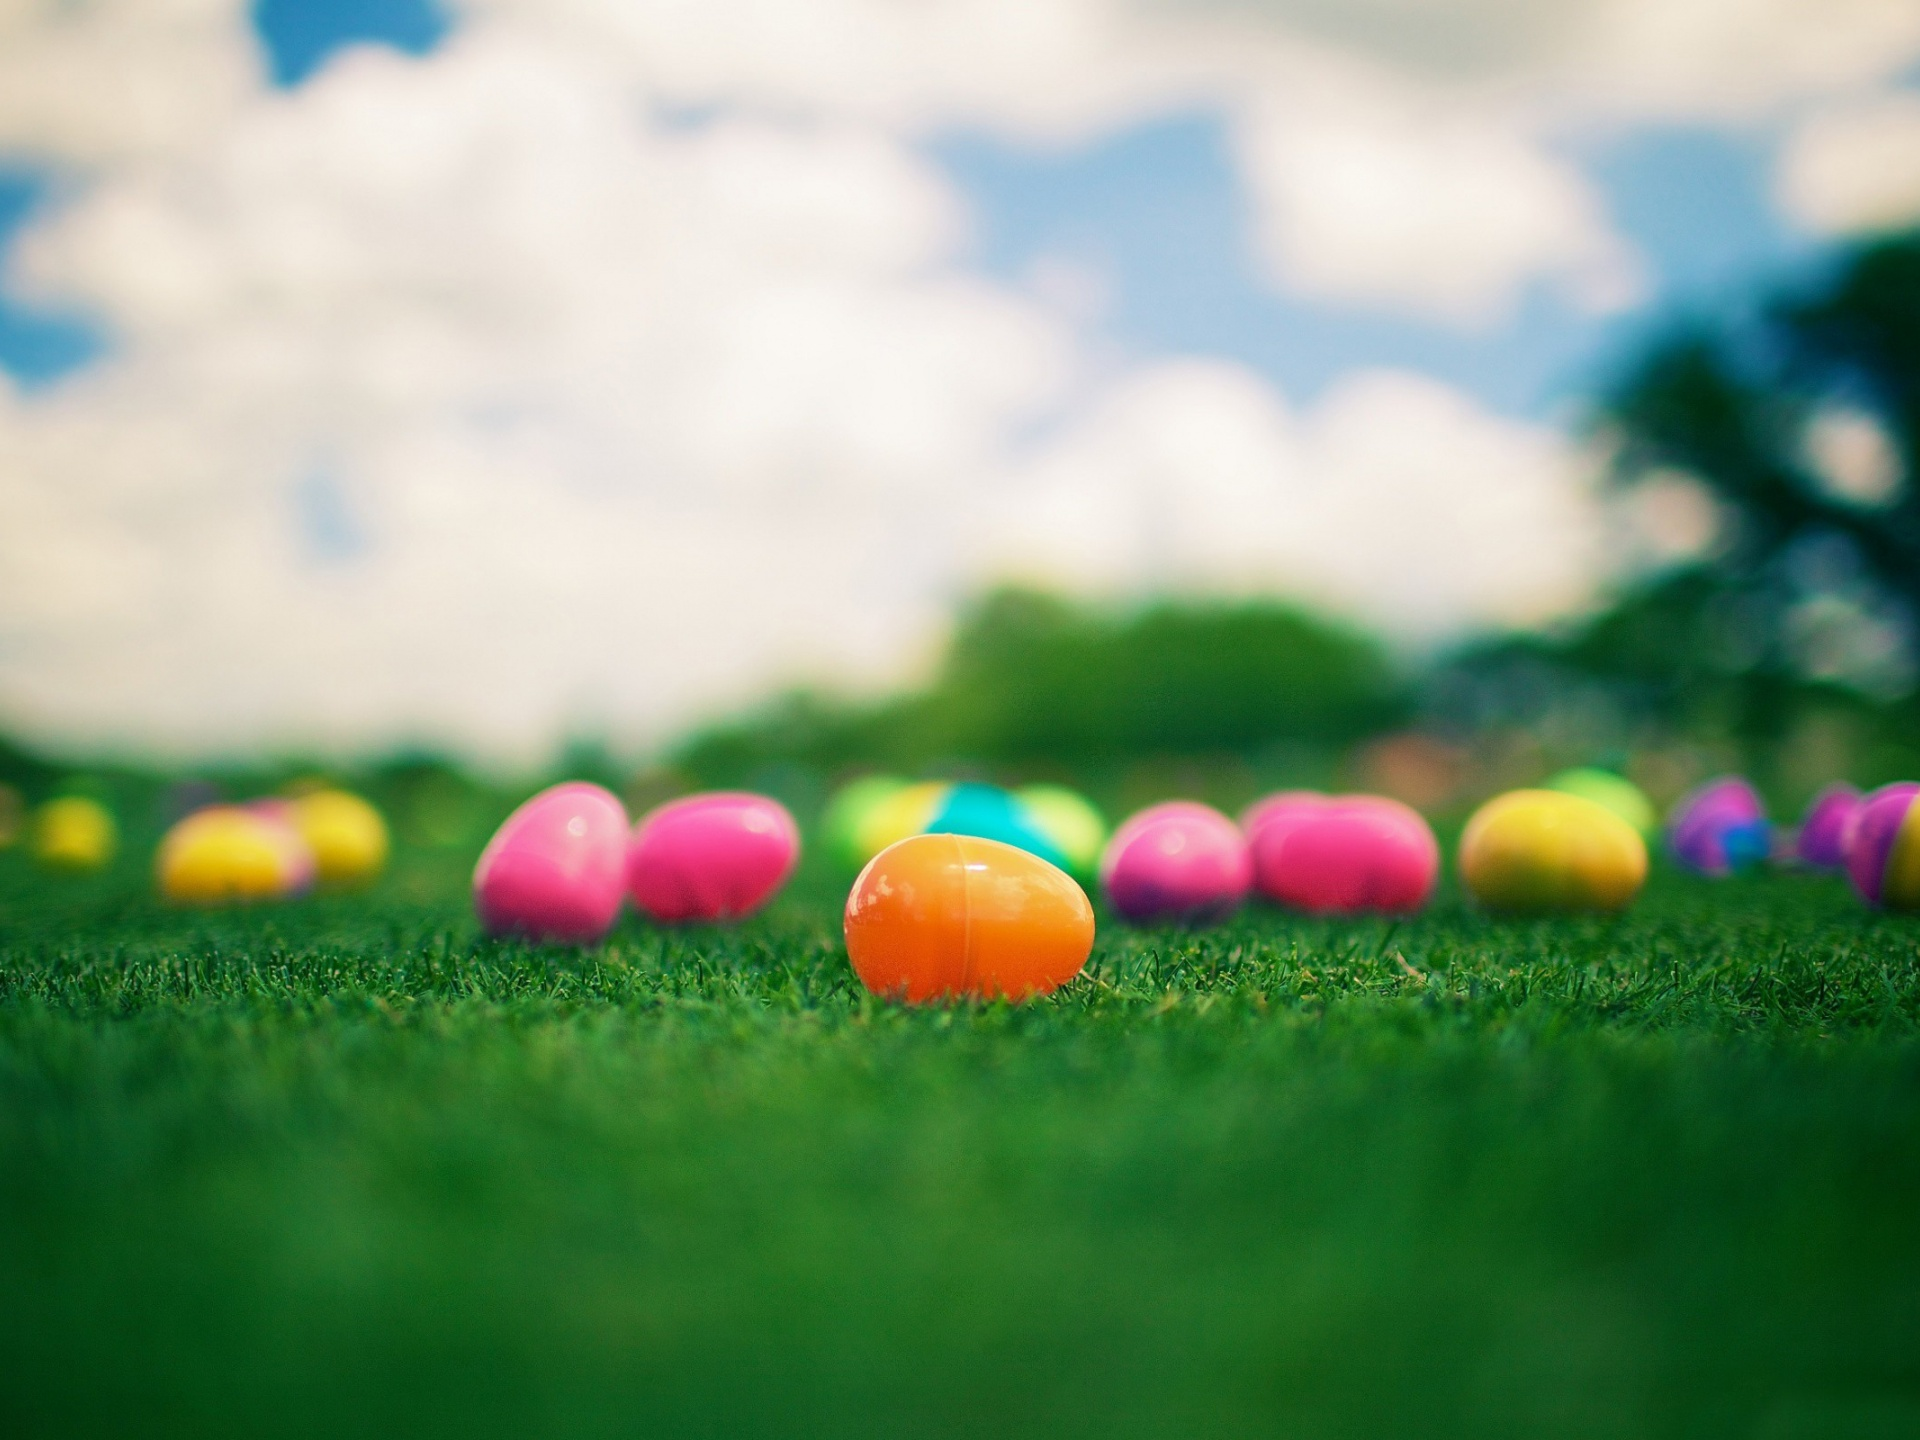 click to free download the wallpaper--Holiday Posts, Colourful Easter Eggs on Green Grass, Shall Spread Holiday Atmosphere 1920X1440 free wallpaper download